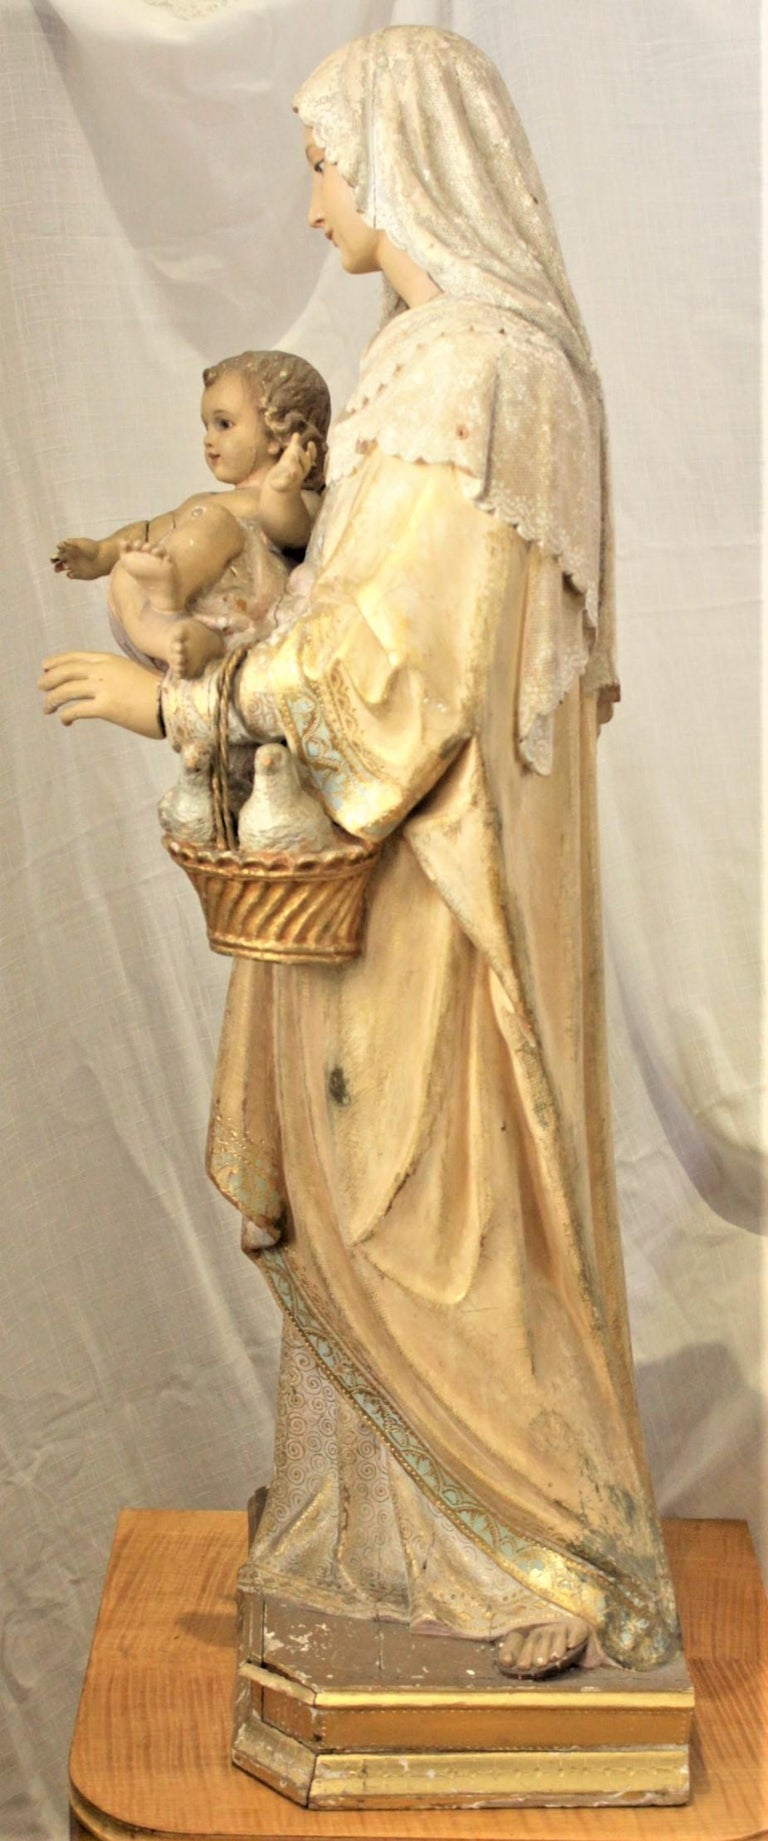 Italian Antique Hand-Carved & Polychrome Painted Sculpture of The Madonna and Child For Sale